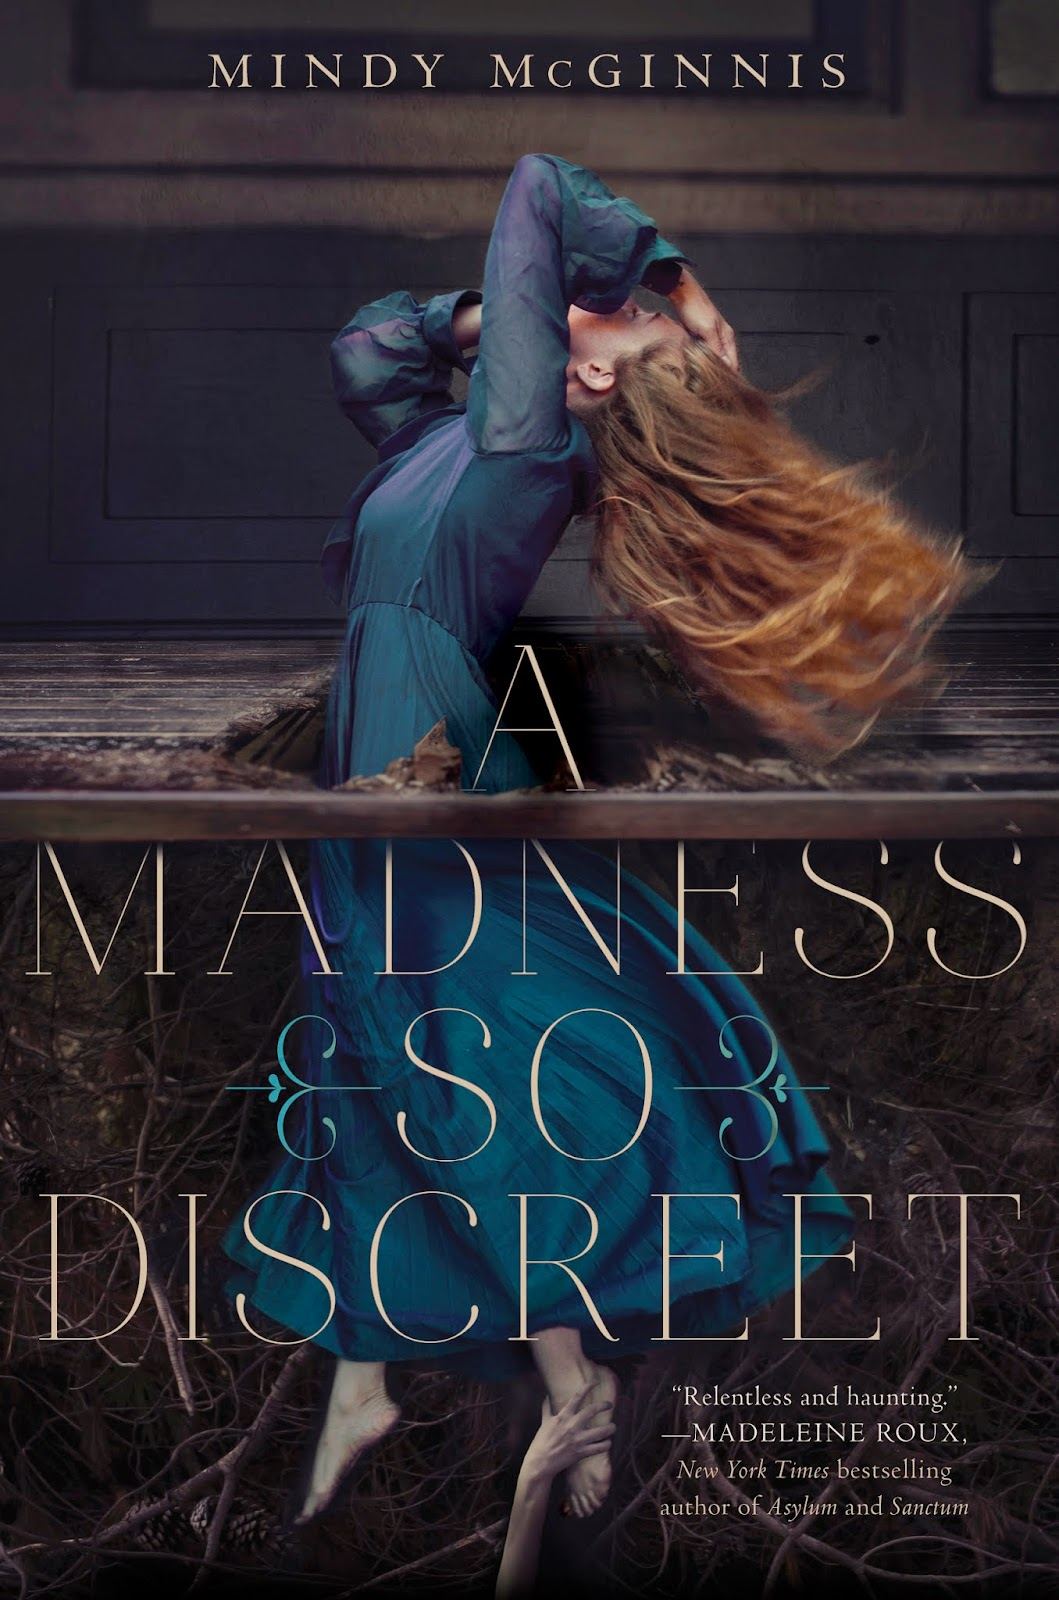 https://www.goodreads.com/book/show/24376529-a-madness-so-discreet